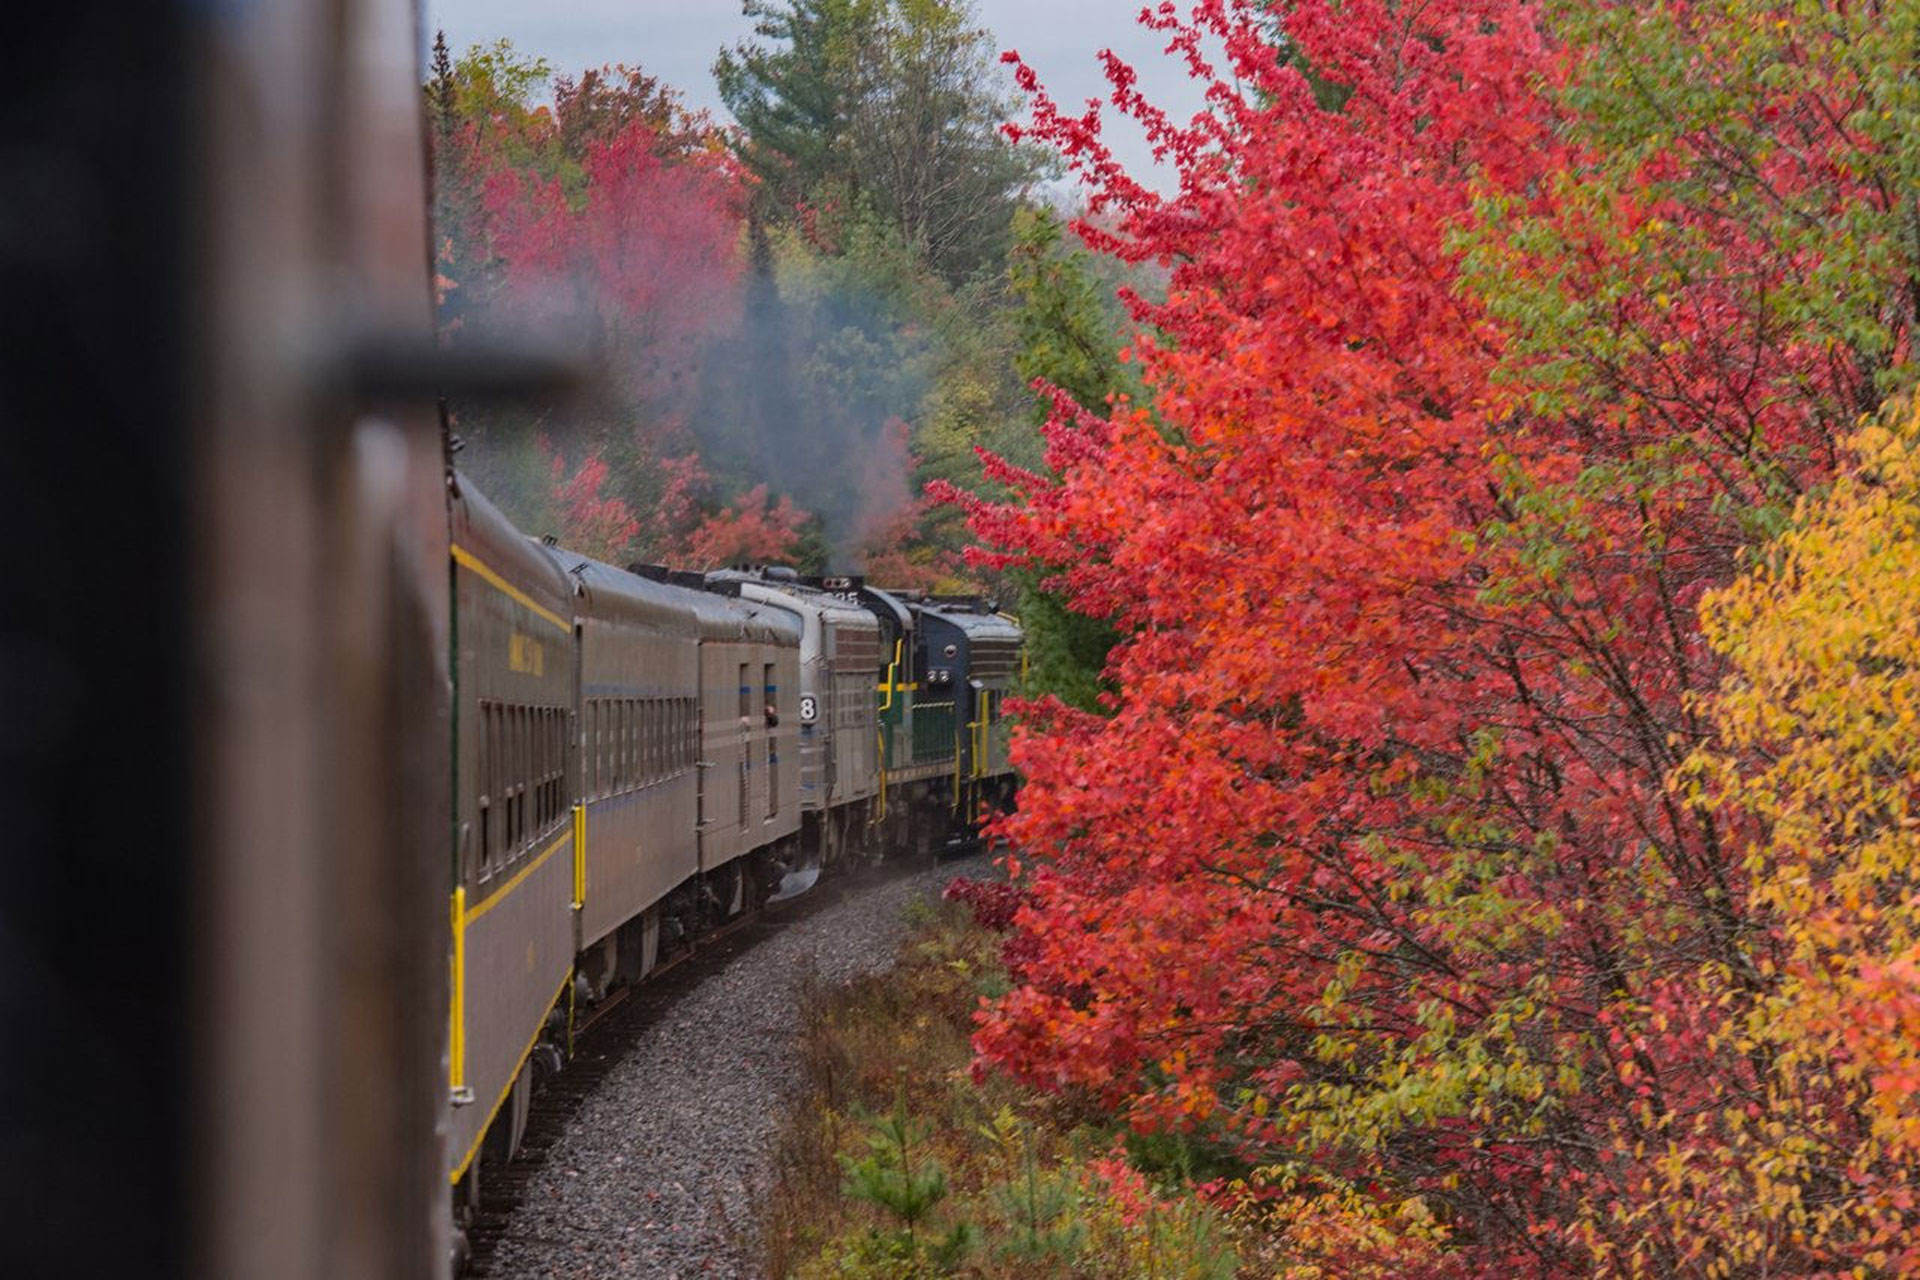 Adirondack Scenic Railroad; Courtsey of Oneida County Tourism